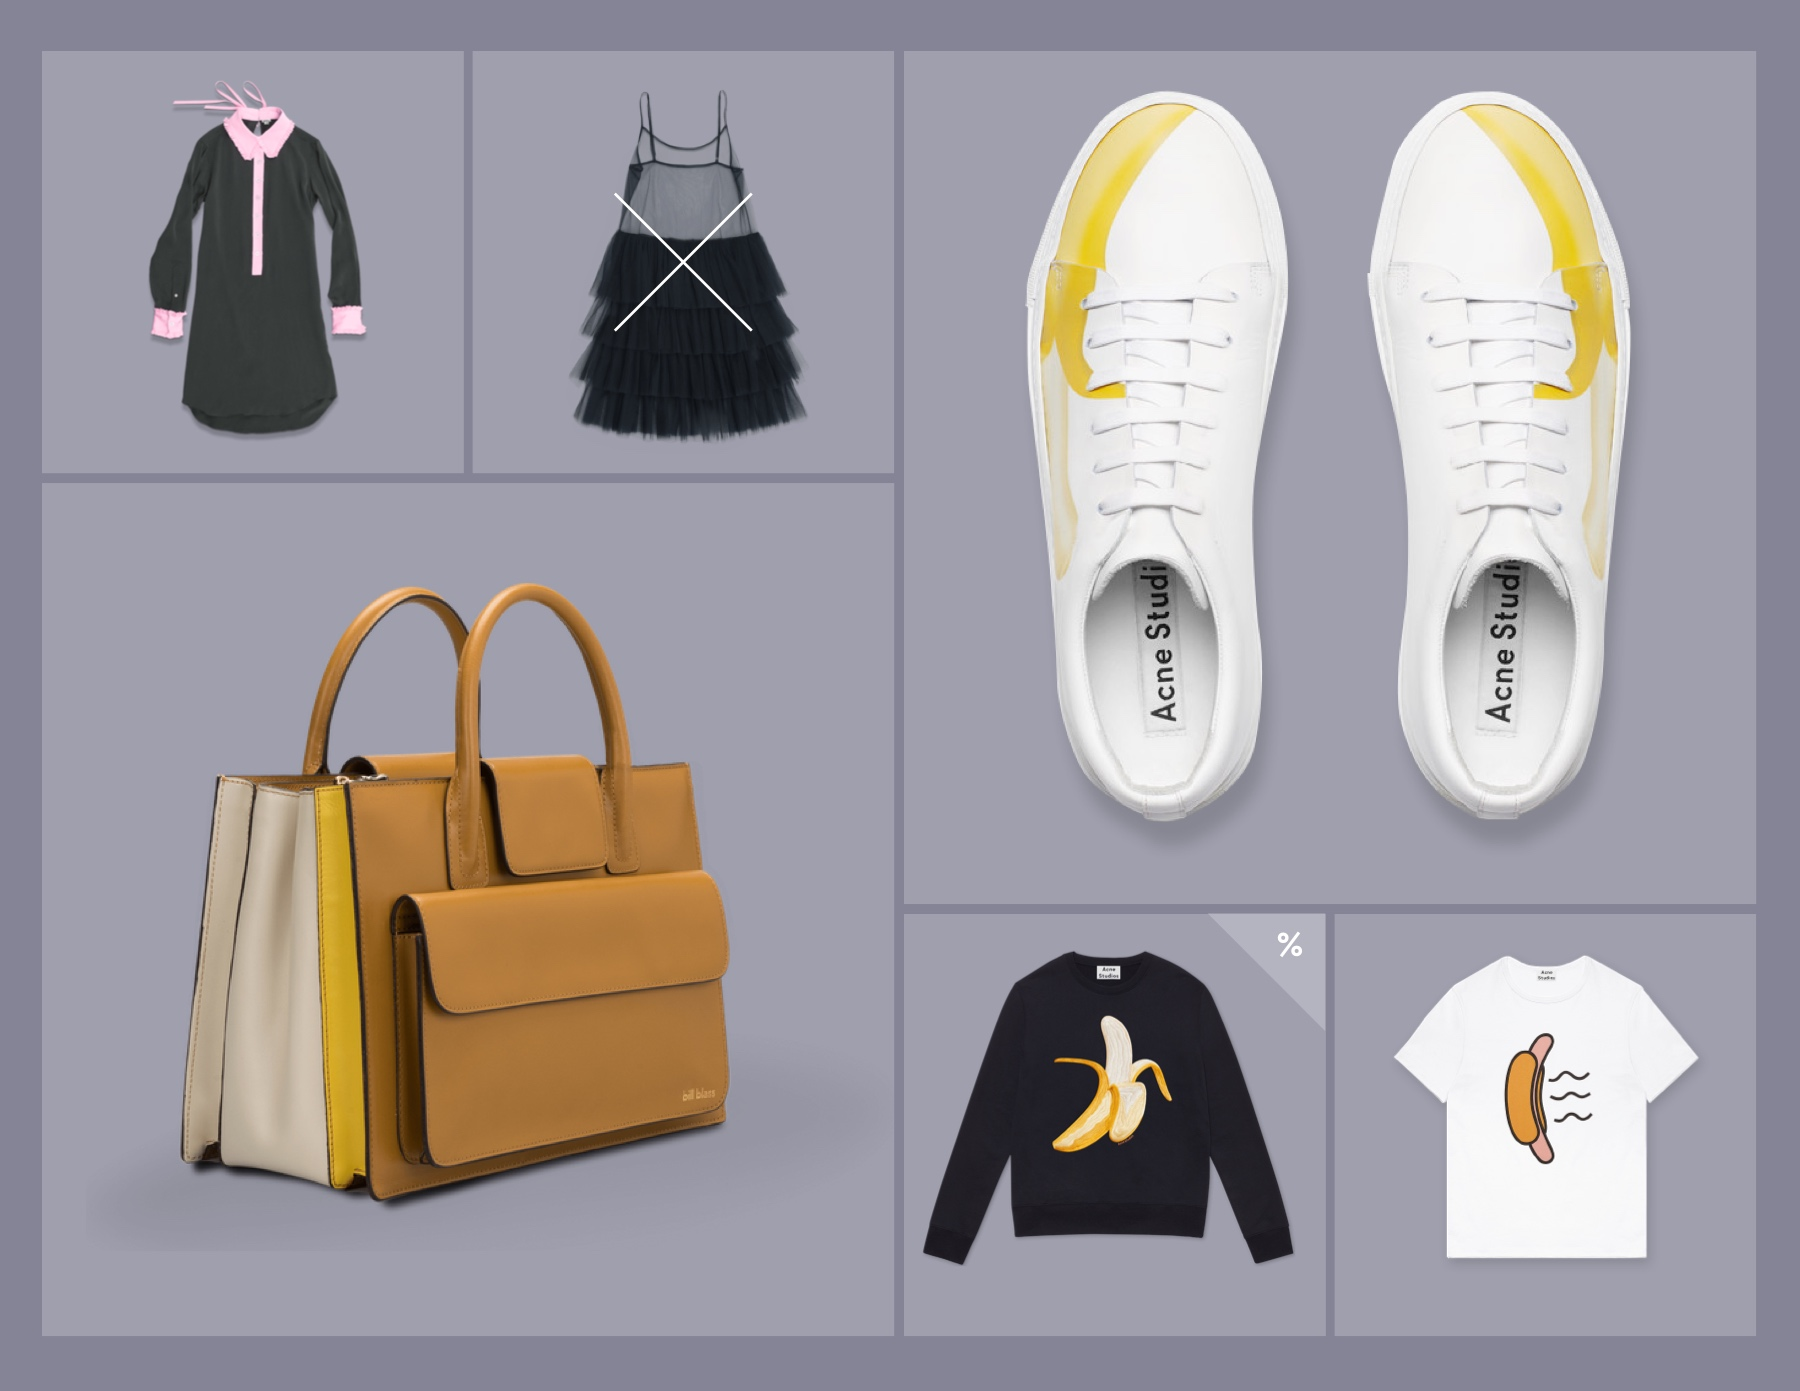 Shopify Theme Design - Shoes, Bag, Clothes displayed in a grid